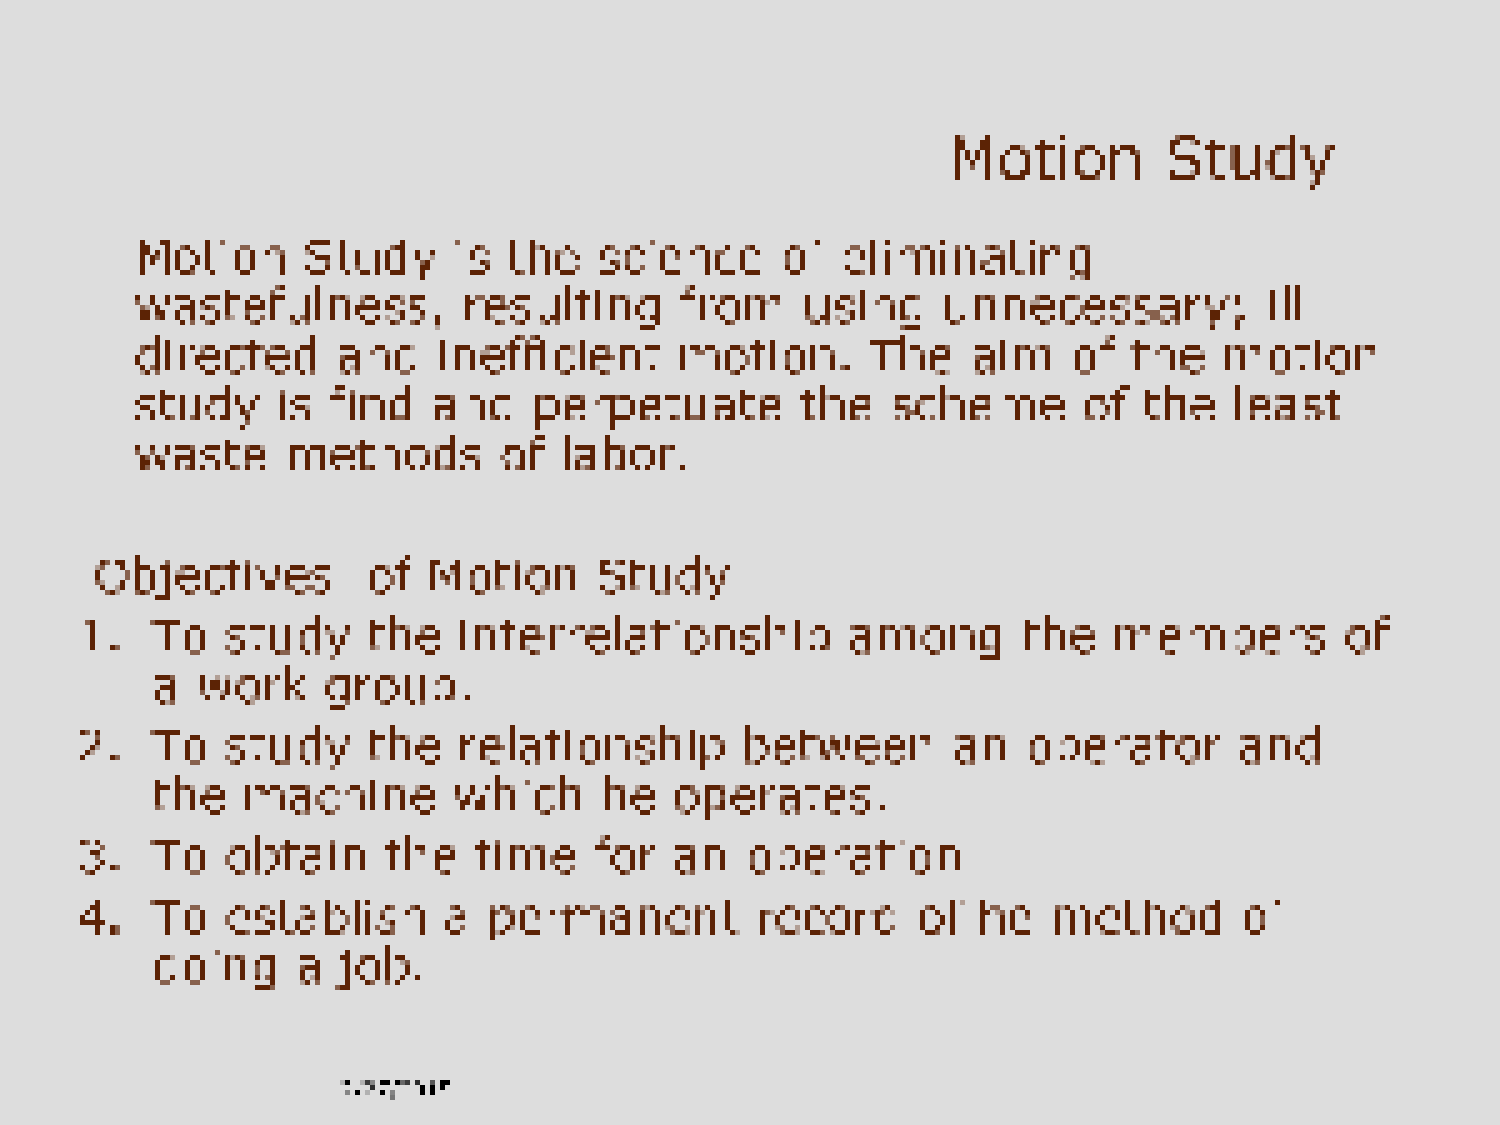 operations mgmt chapter 1 solution The management of systems or processes that create goods and or provide services b a sequence of activities and organizations involved in producing and delivering a good or service.